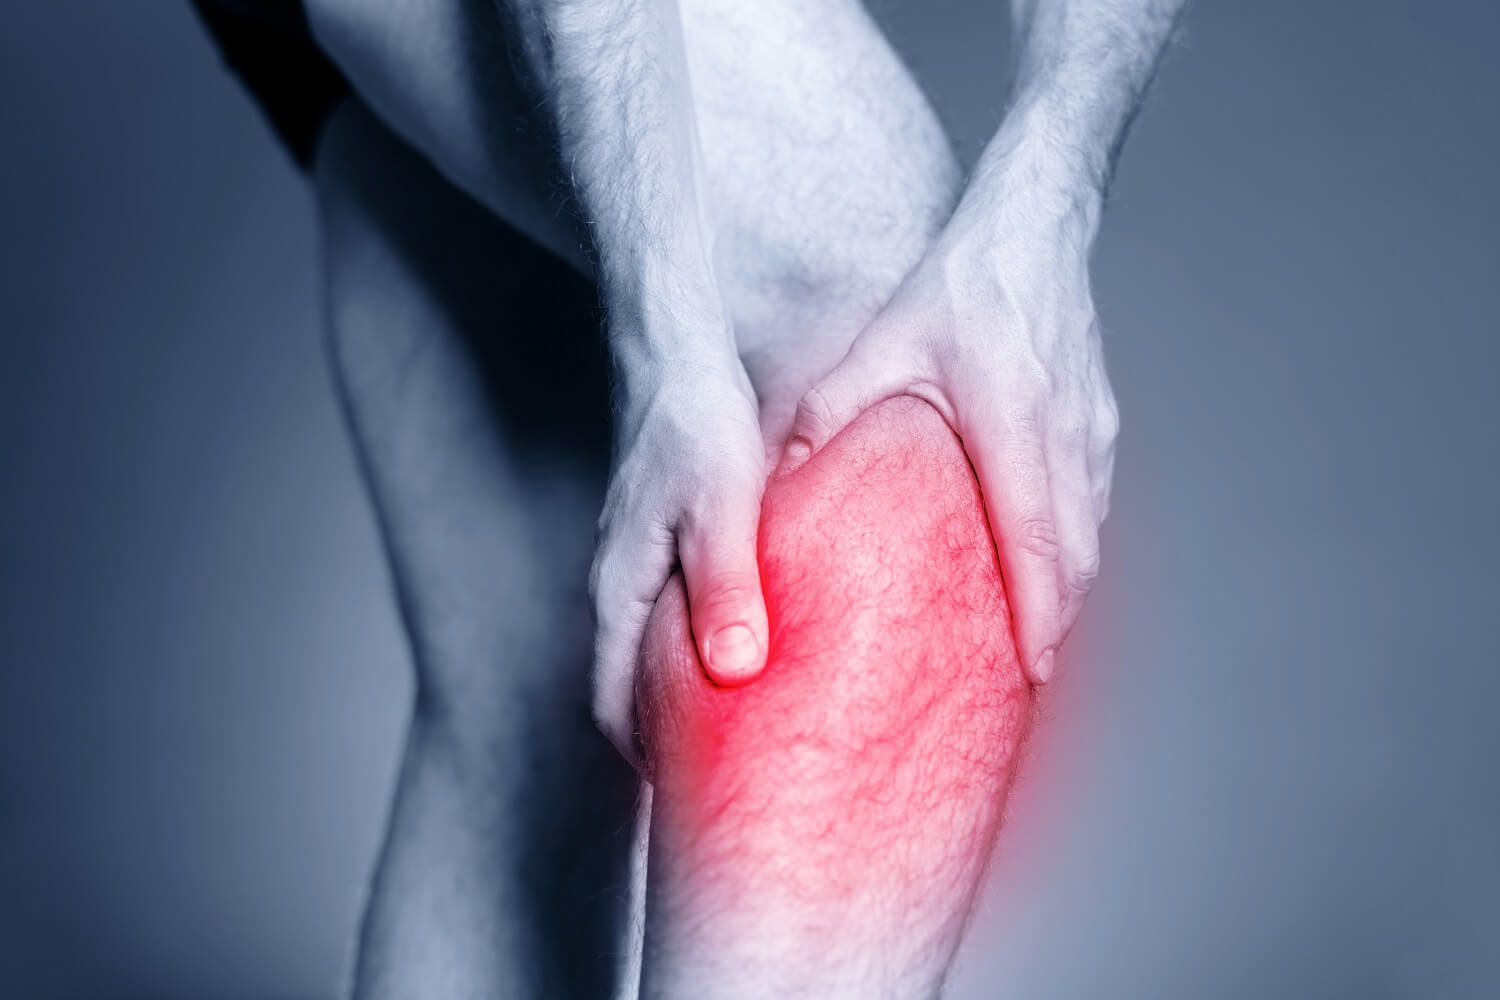 common-calf-injury-symptoms-and-causes